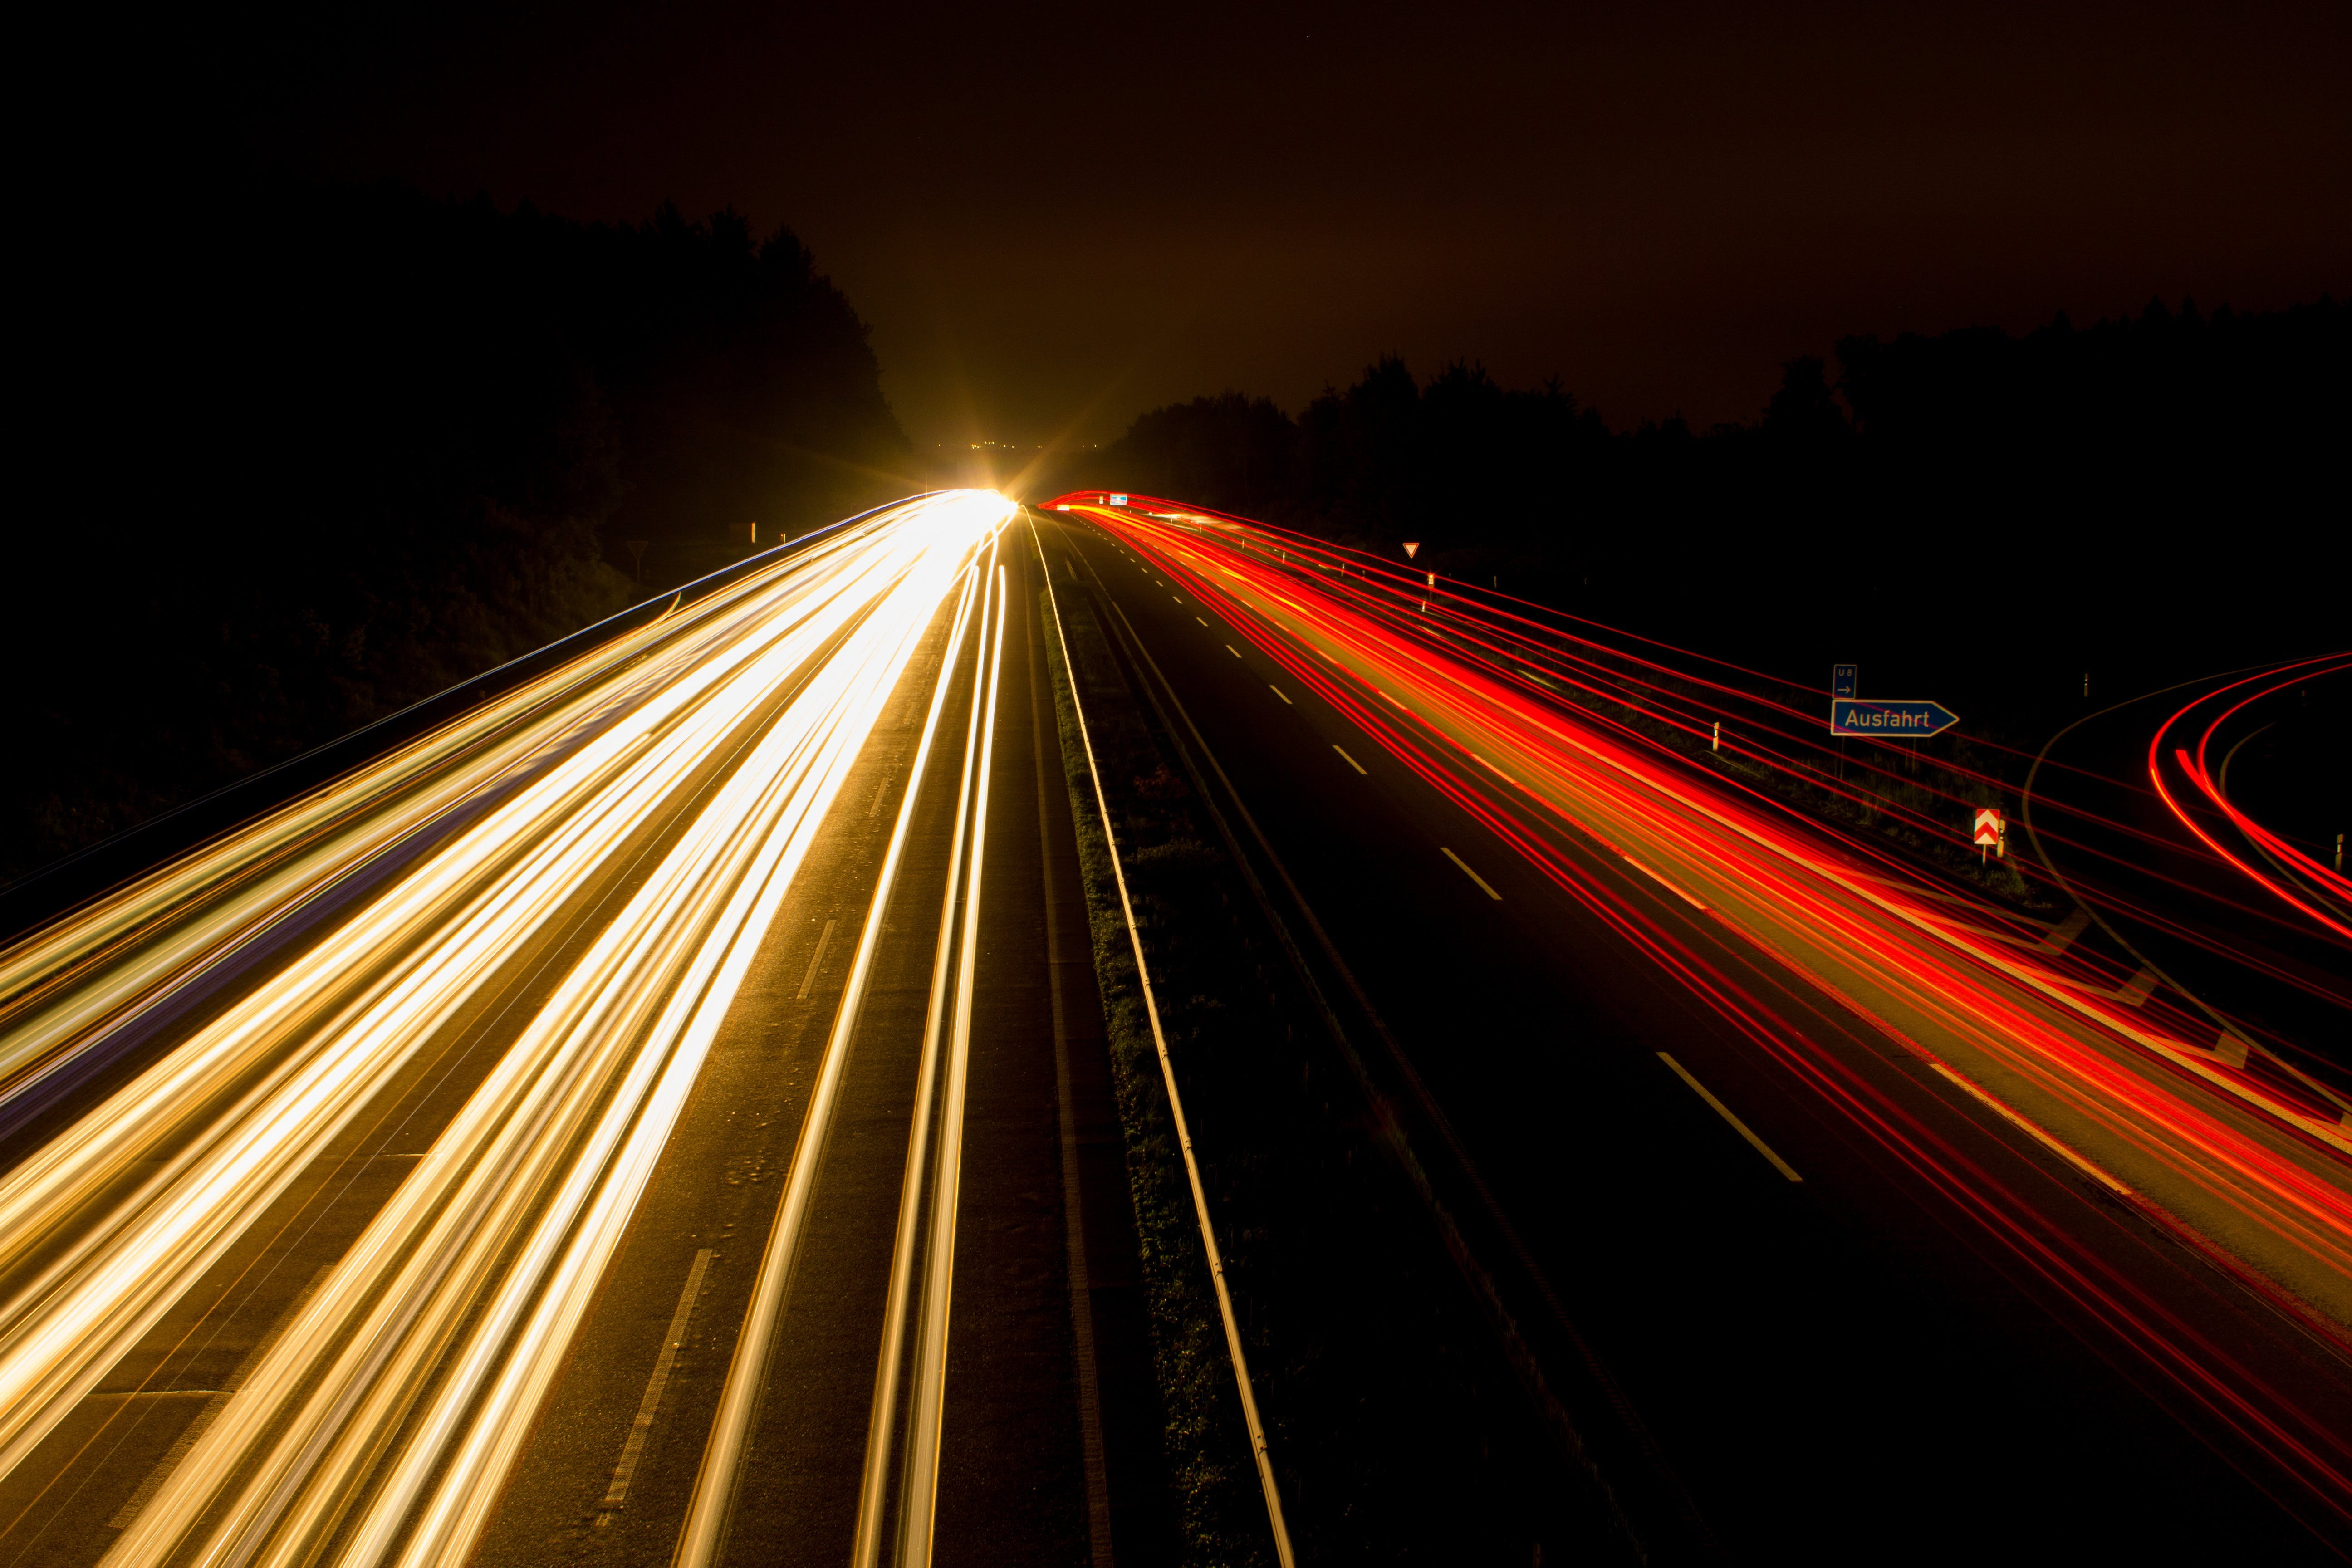 Speeding Car on High Way during Night Time